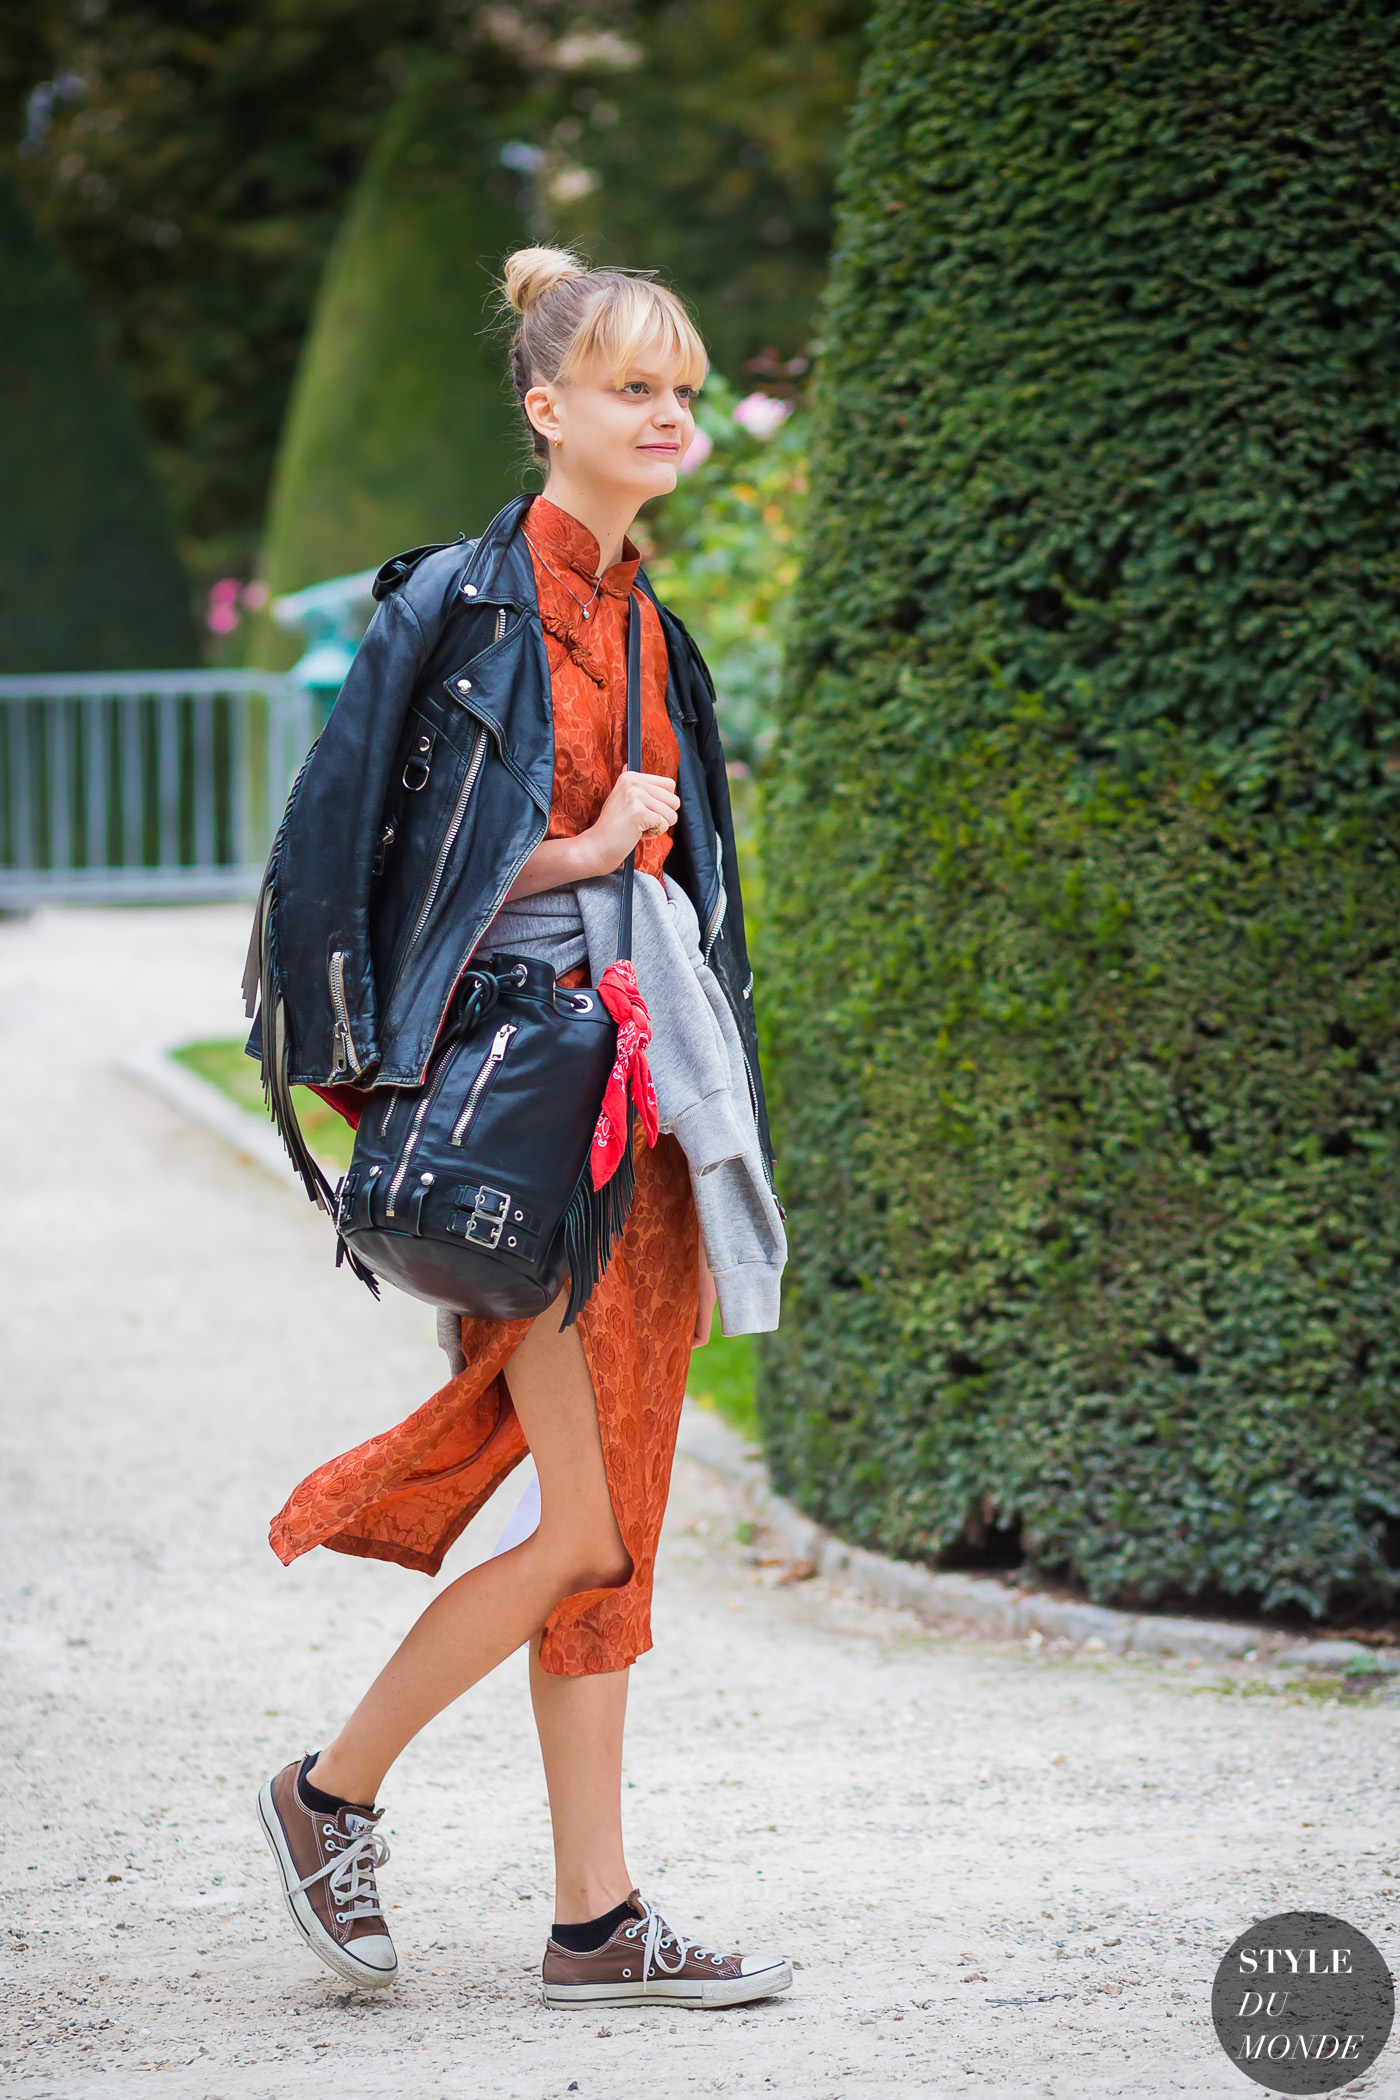 caroline-schurch-by-styledumonde-street-style-fashion-photography